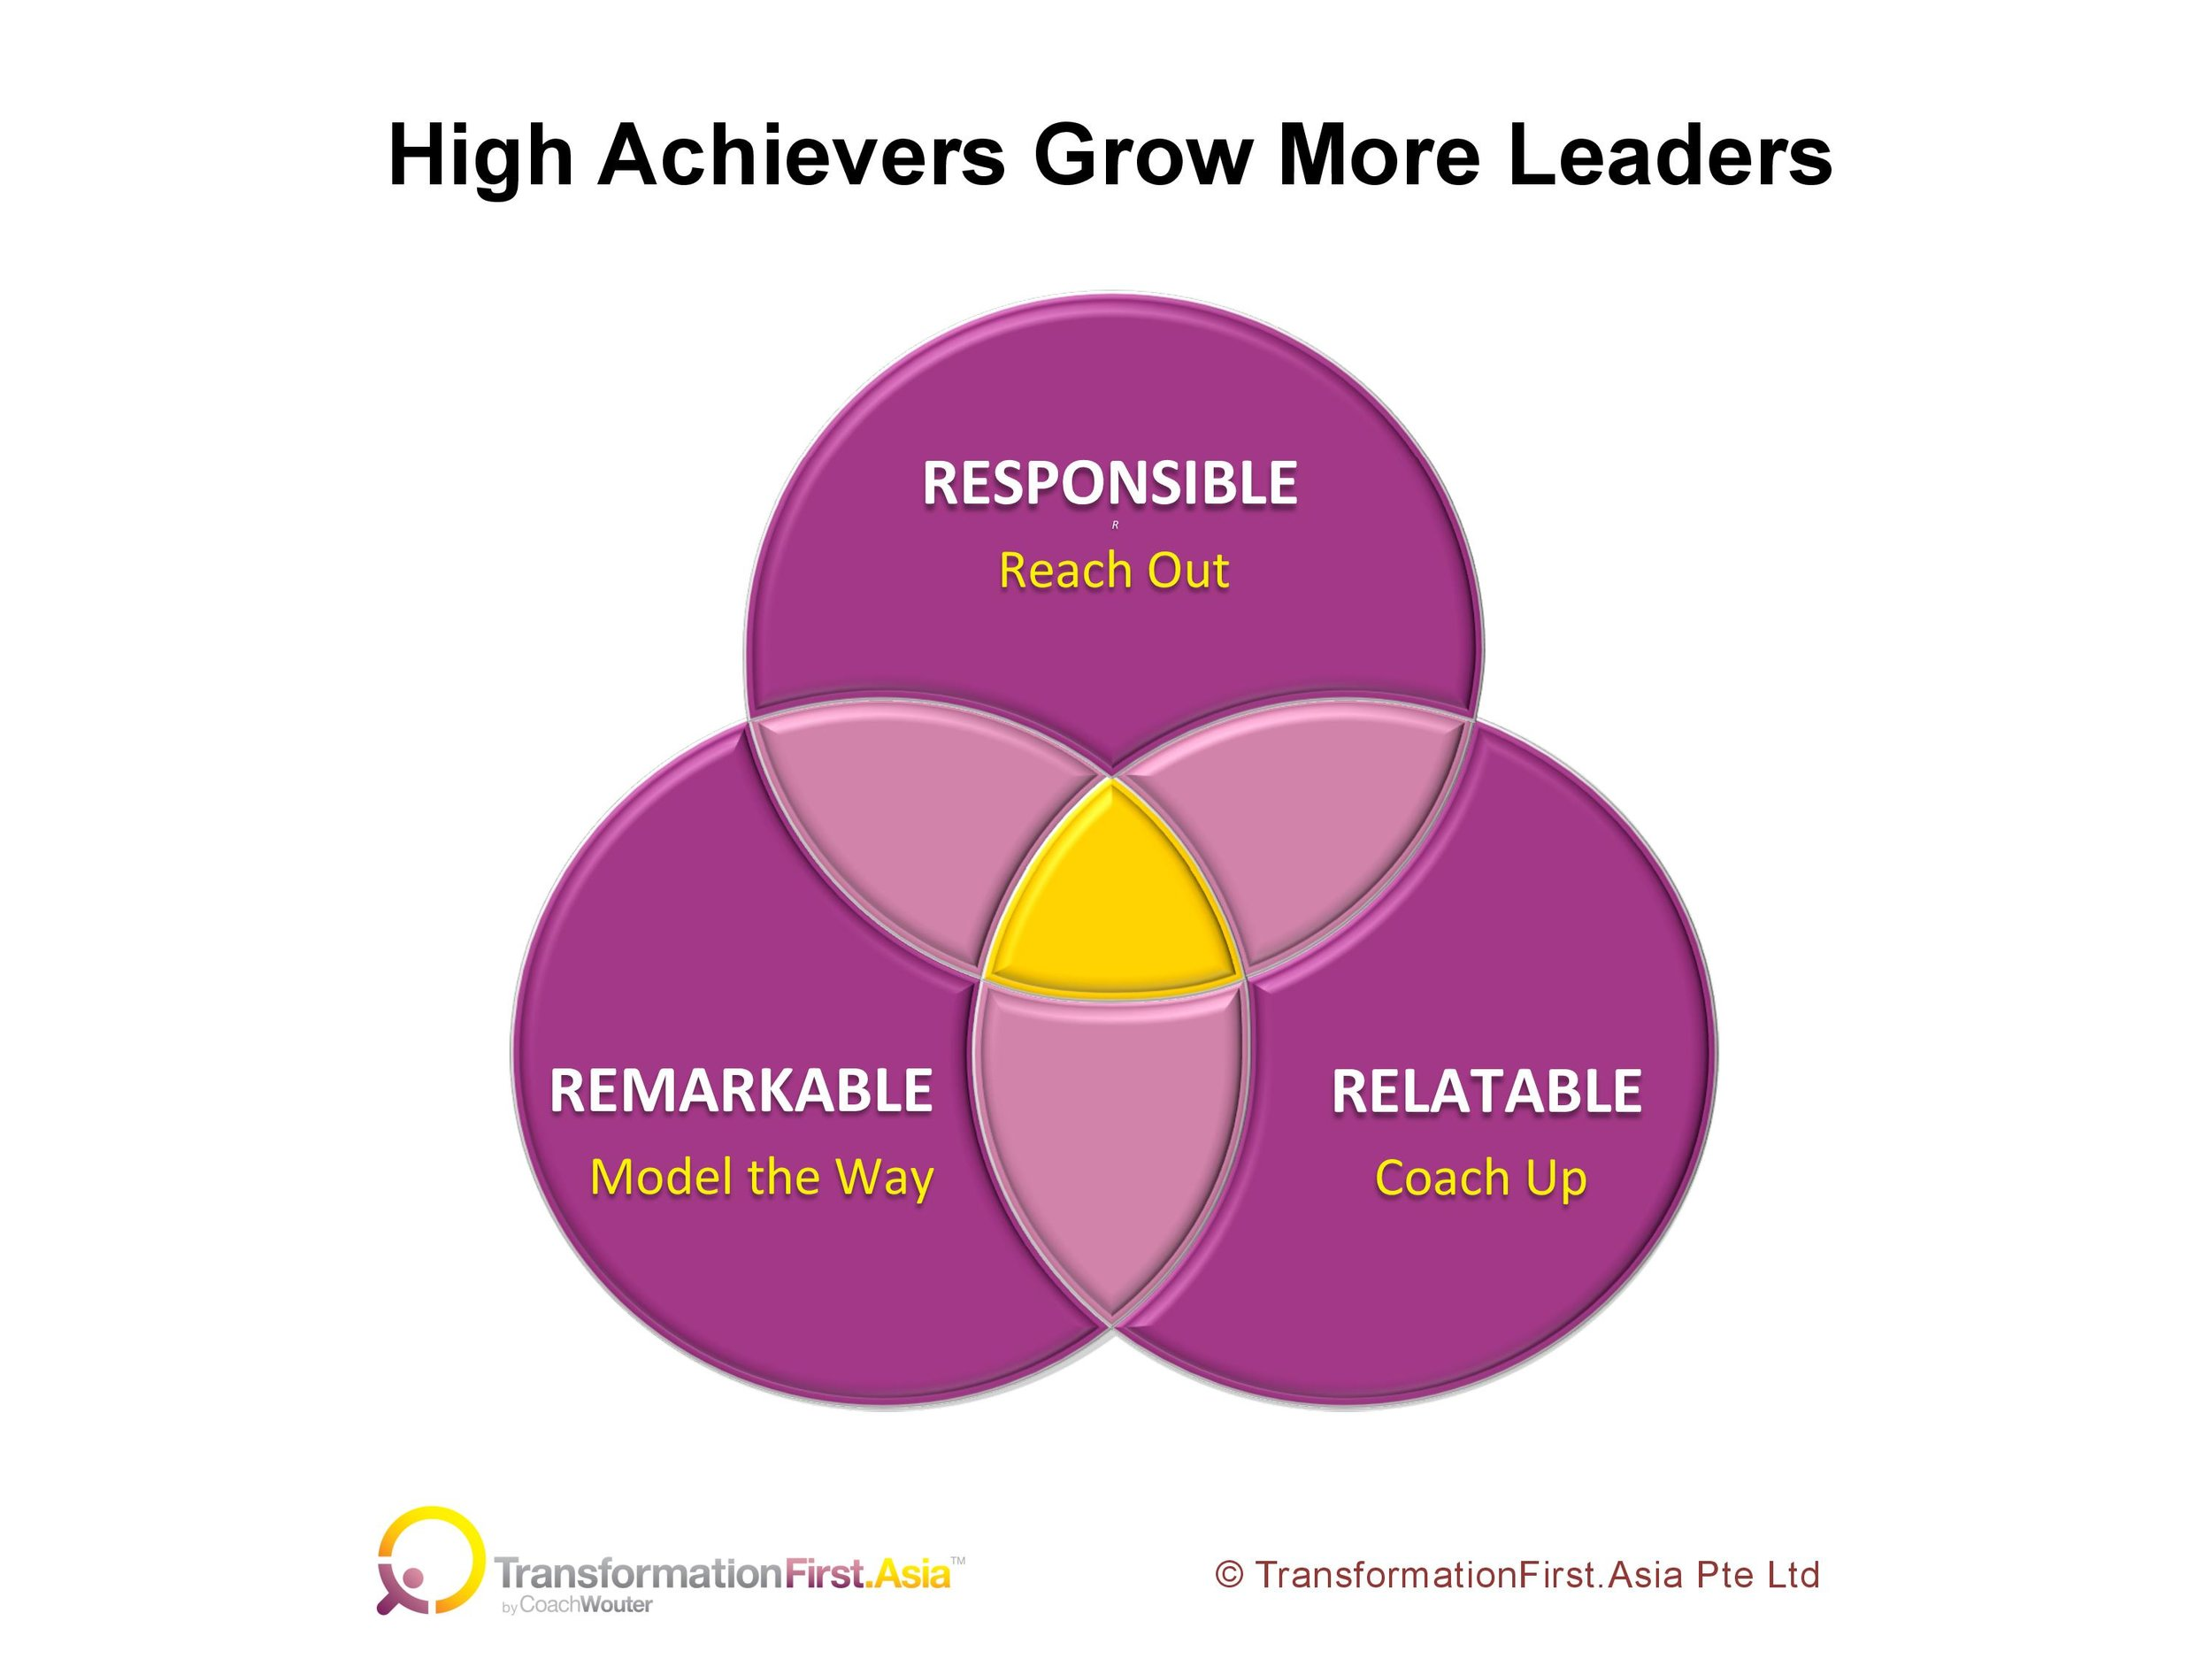 High Achievers Grow More Leaders-page-001.jpg